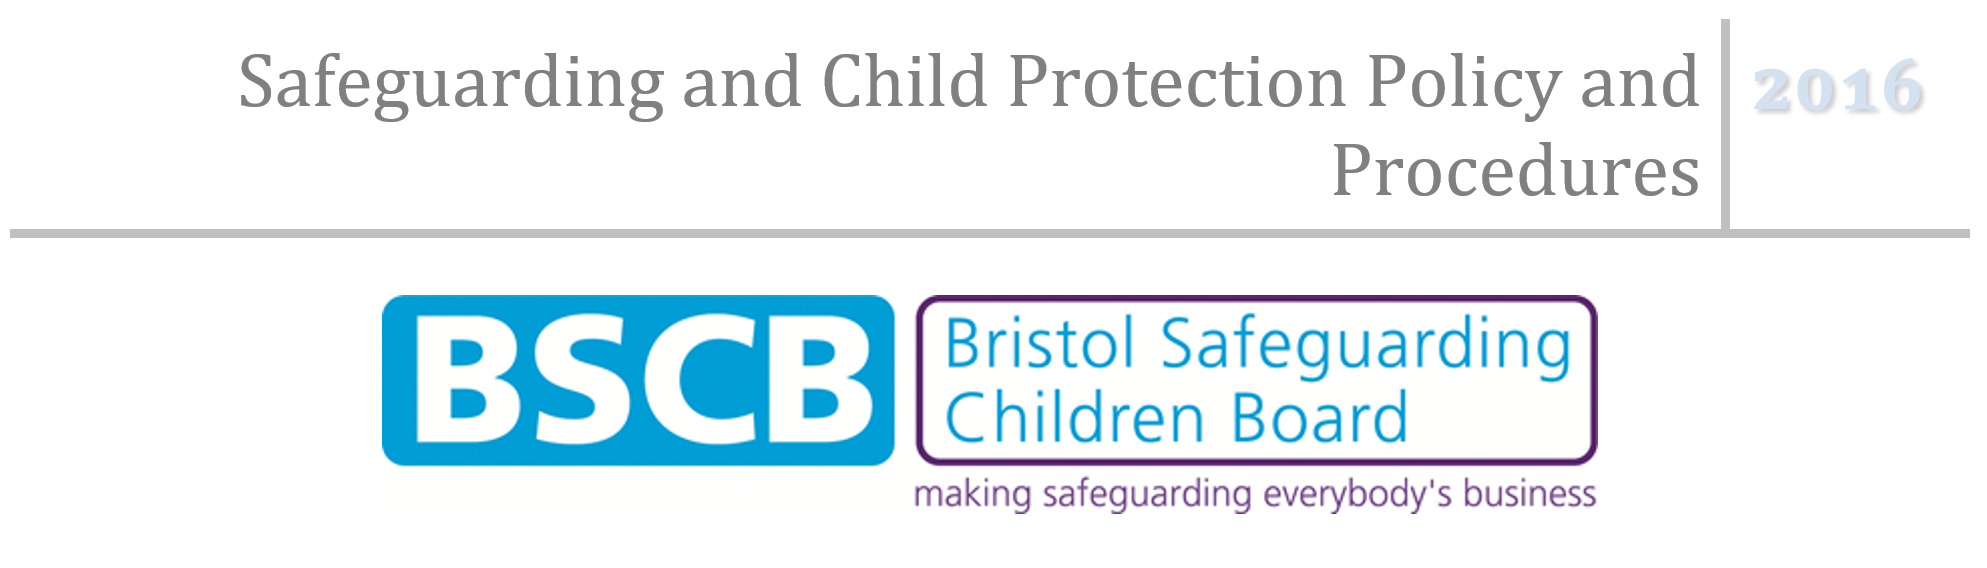 Child protection in the UK